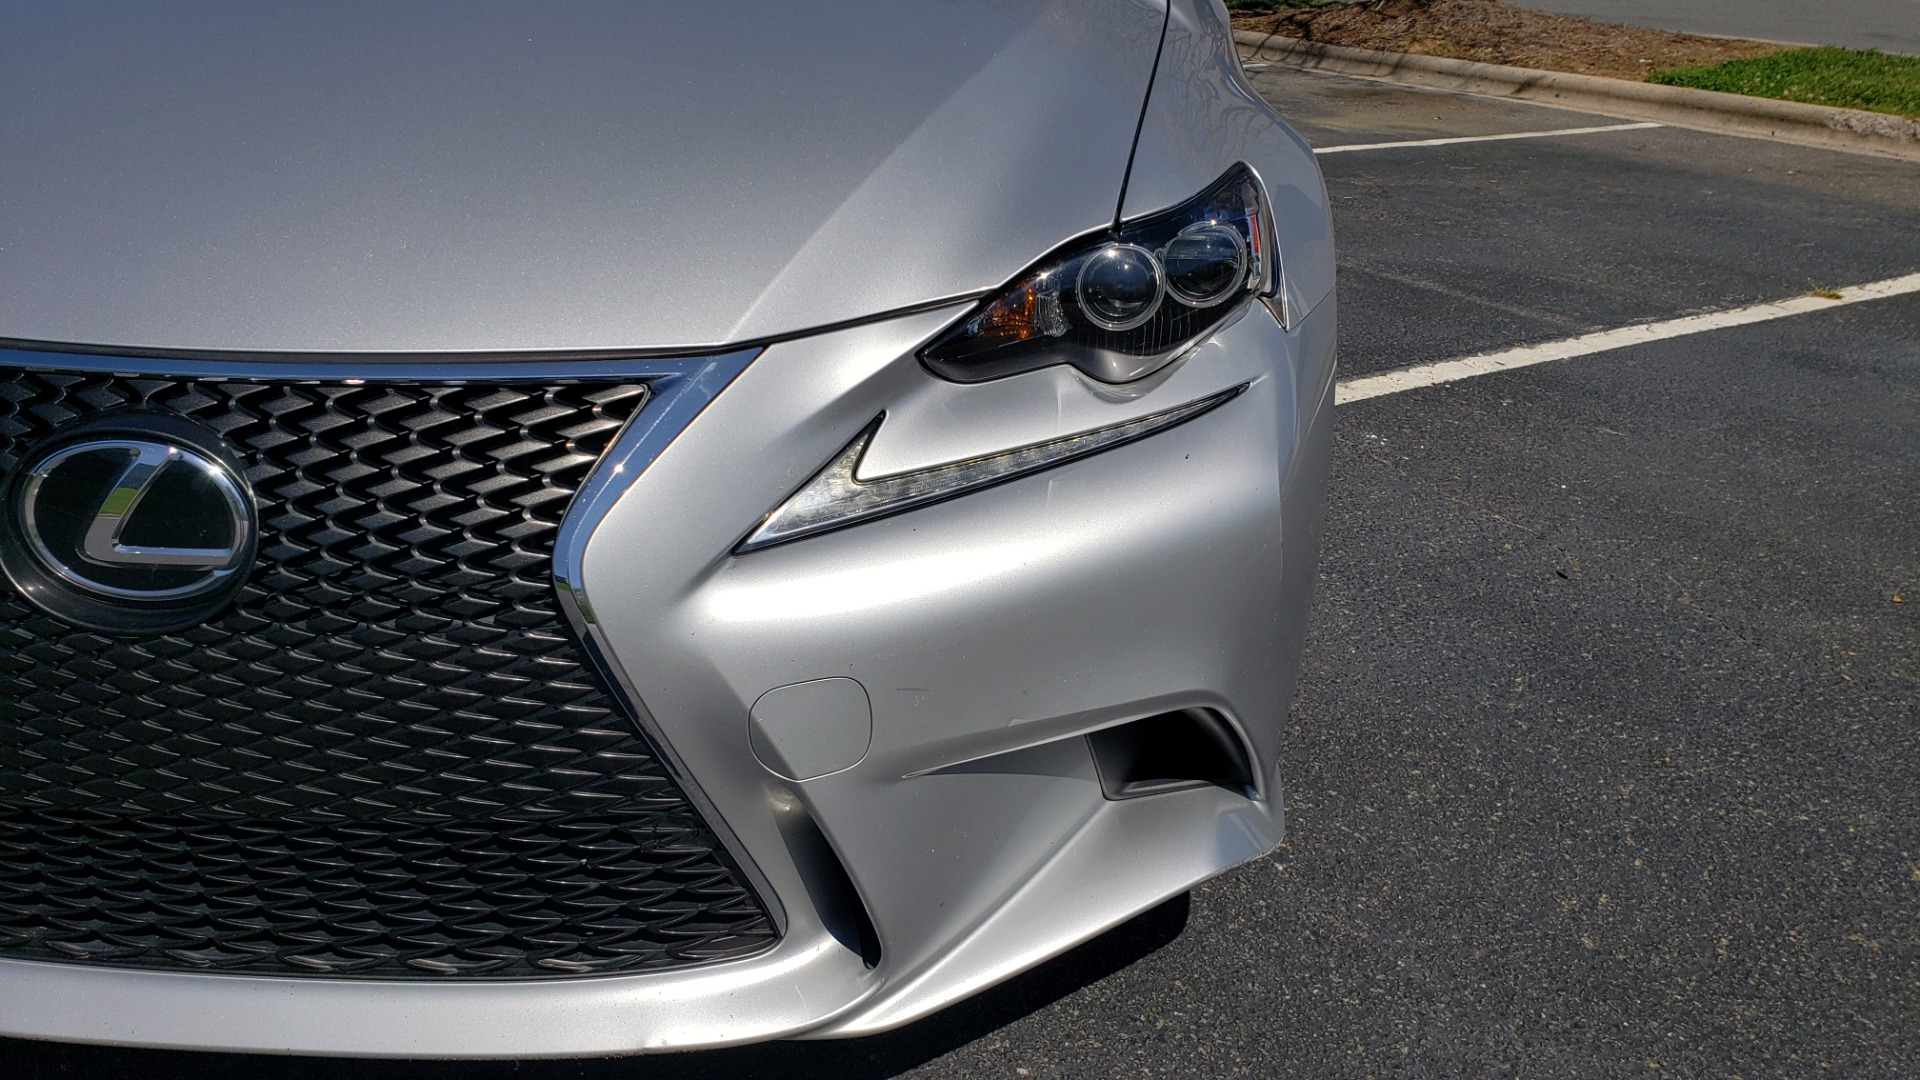 Used 2015 Lexus IS 250 F-SPORT / BSM / SUNROOF / VENT SEATS / REARVIEW for sale Sold at Formula Imports in Charlotte NC 28227 25